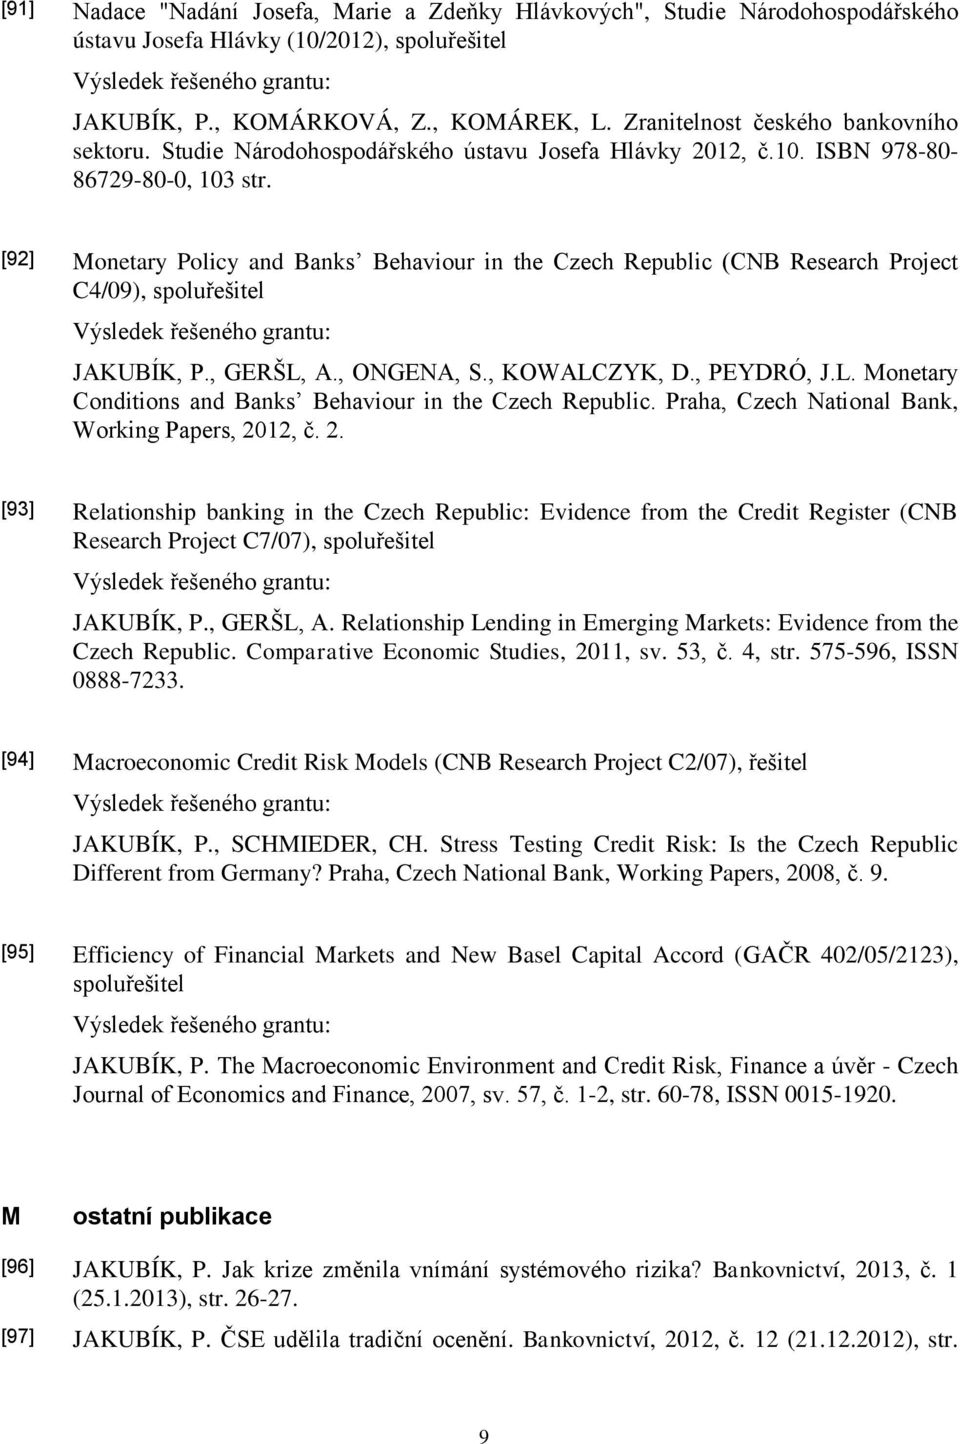 [92] Monetary Policy and Banks Behaviour in the Czech Republic (CNB Research Project C4/09), spoluřešitel JAKUBÍK, P., GERŠL, A., ONGENA, S., KOWALCZYK, D., PEYDRÓ, J.L. Monetary Conditions and Banks Behaviour in the Czech Republic.